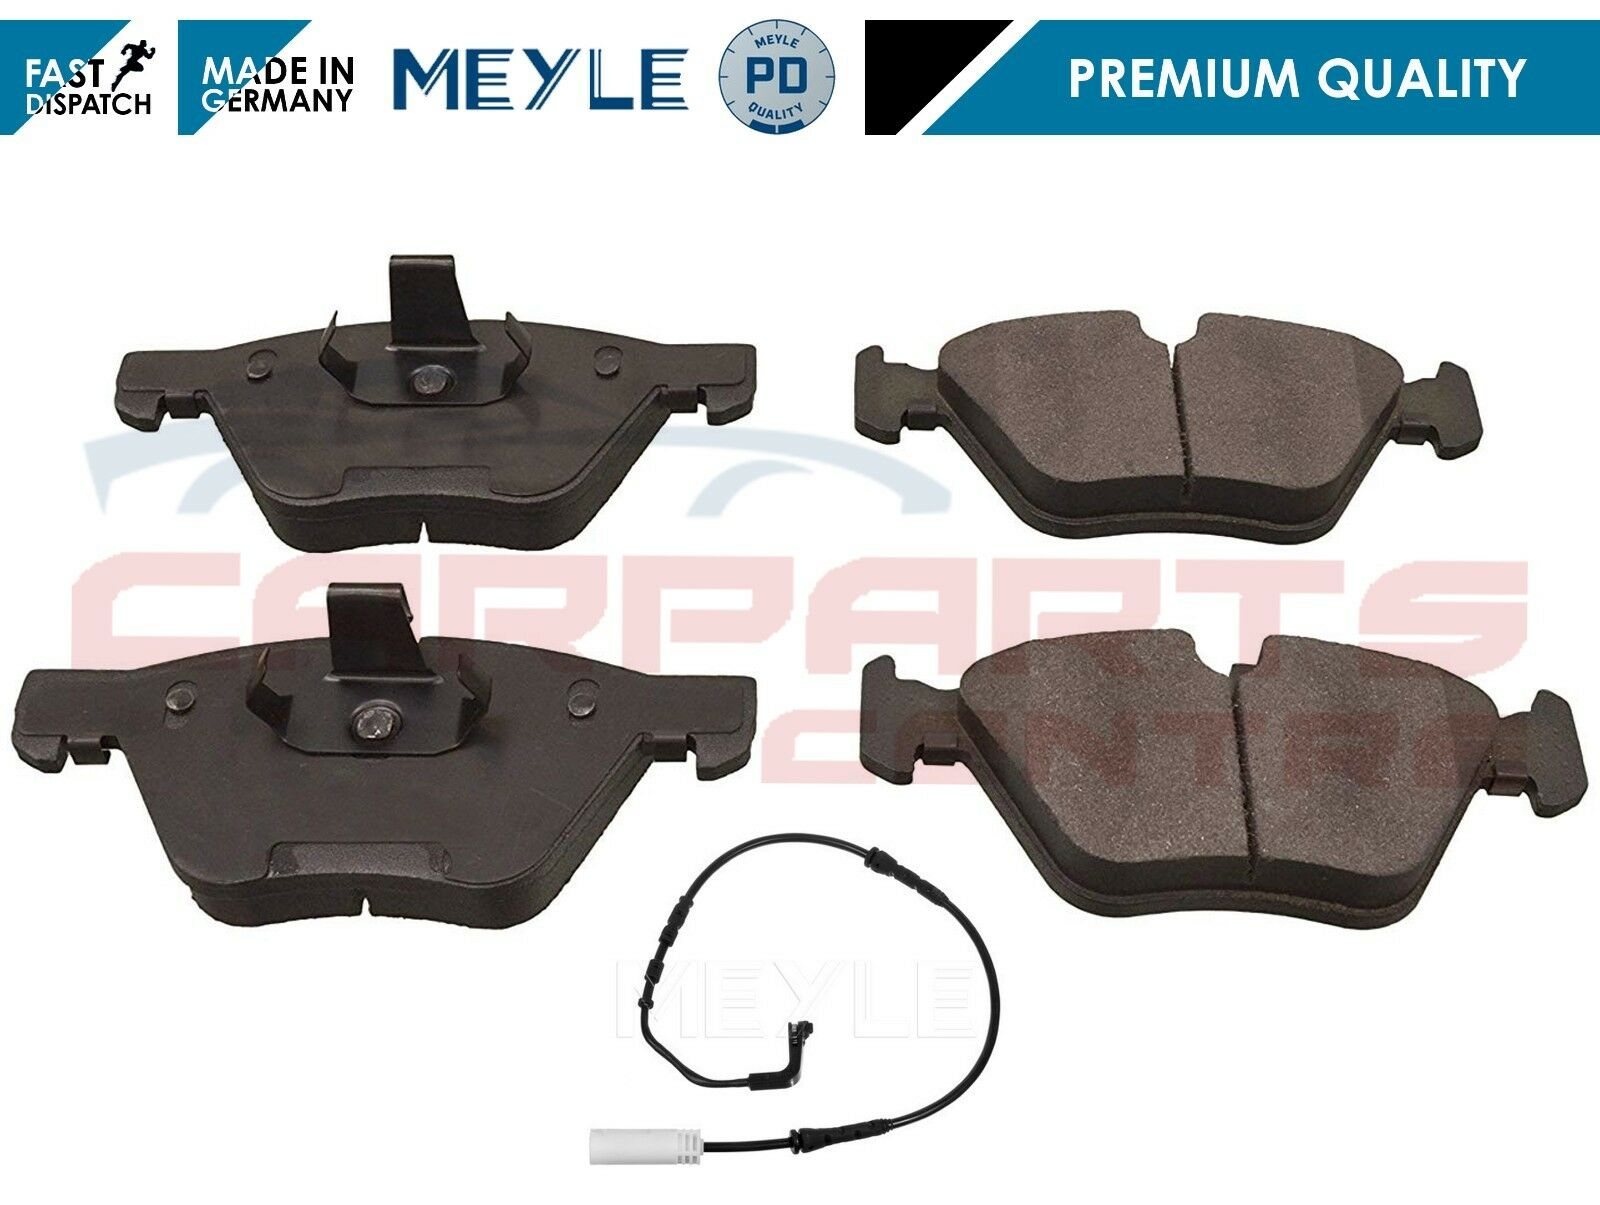 New Fits BMW 1 Series E87 118D Genuine Mintex Rear Brake Pads Set